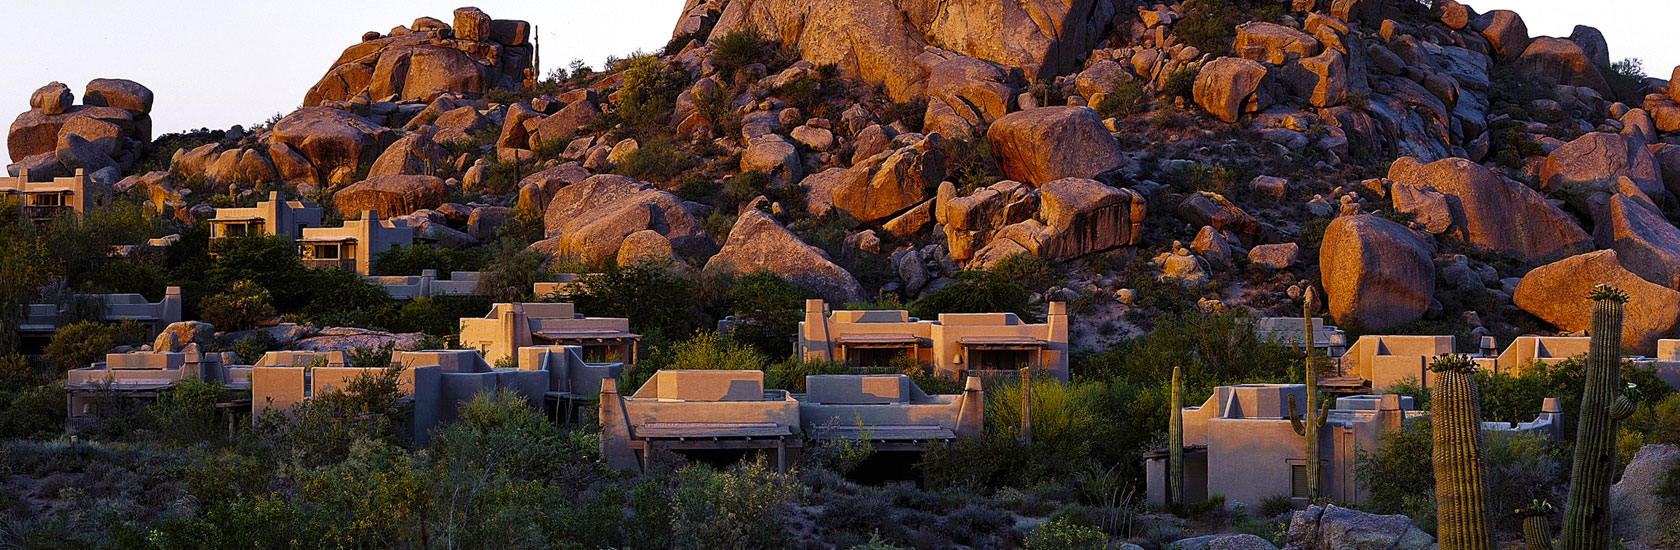 Executive Suites - view of accommodations surrounded by large boulder formations at sunset